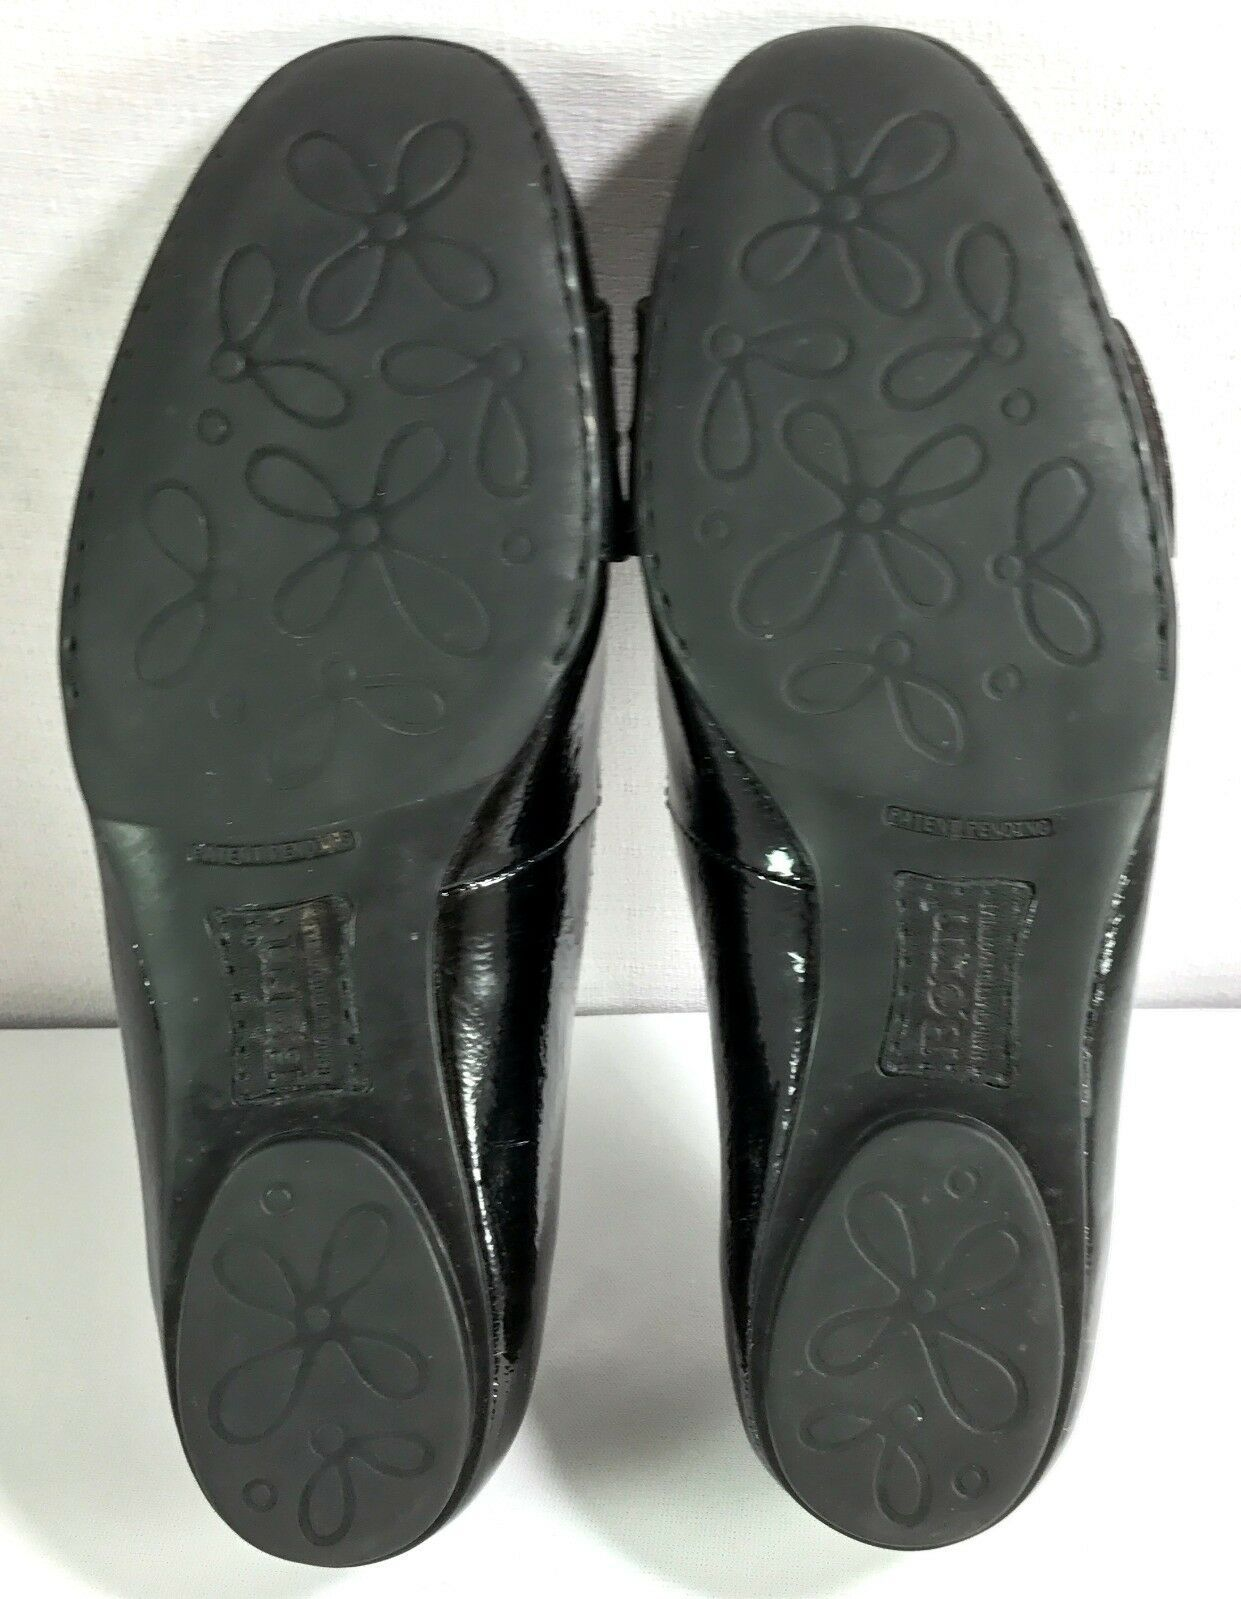 Born Ballet Flats Womens Black Patent Leather Slip On Shoes Size 9 / 40.5